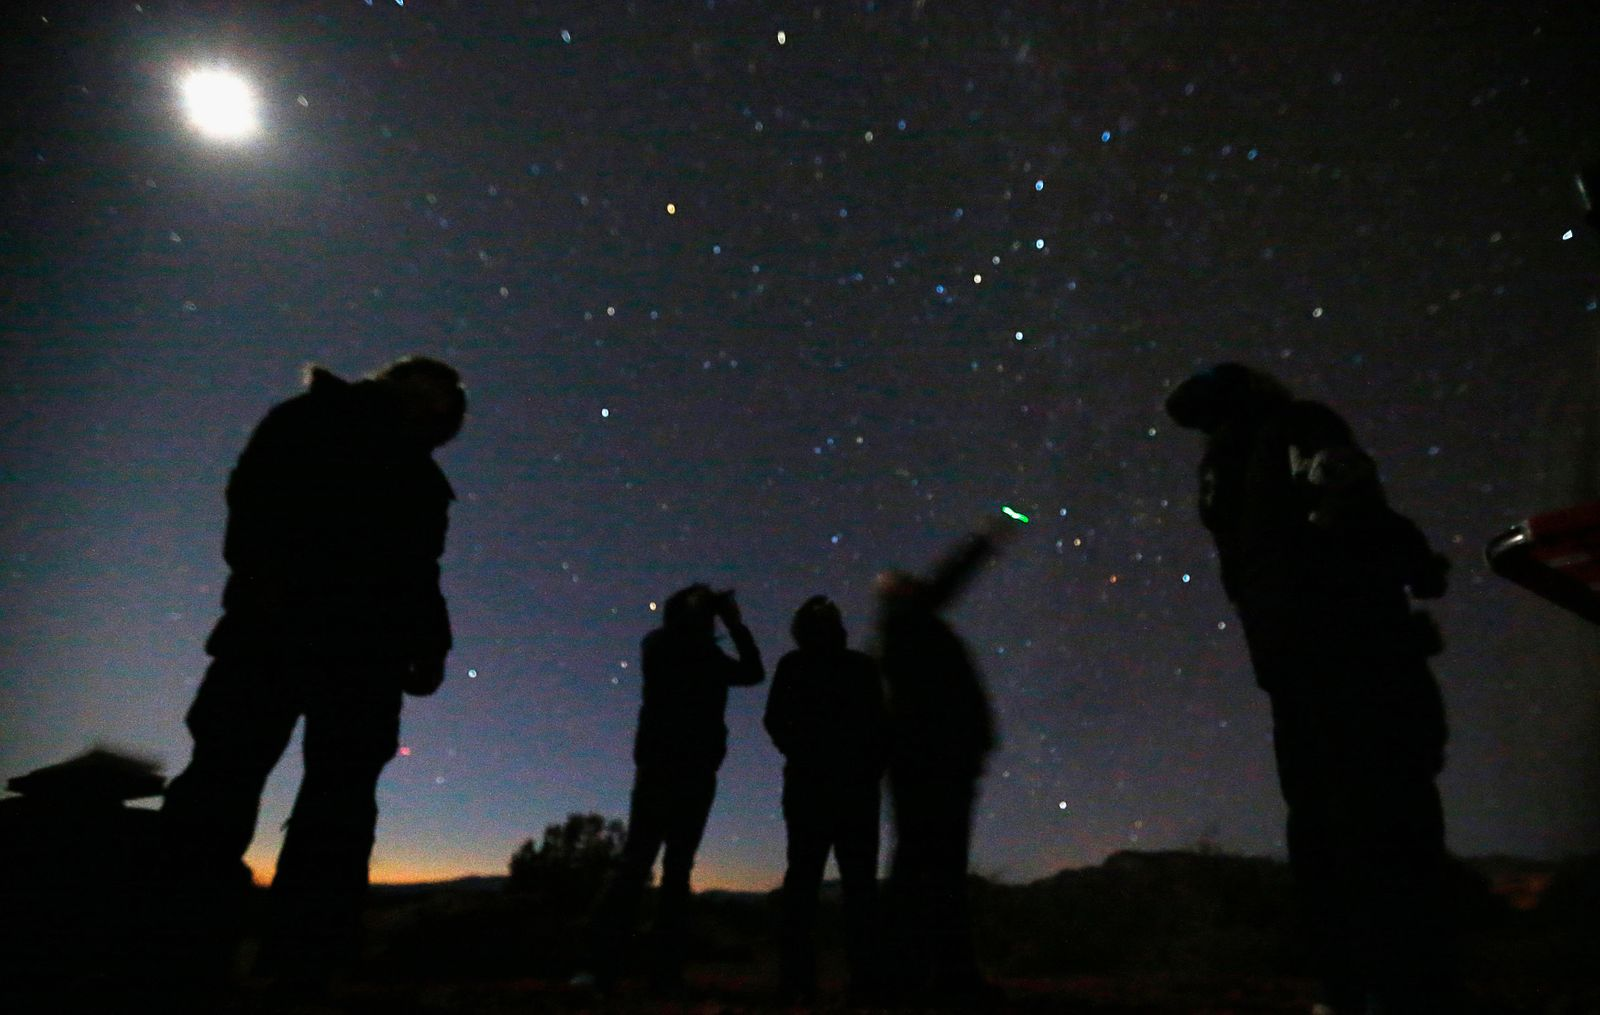 People look at the night sky using night vision goggles during an UFO tour in desert outside Sedona